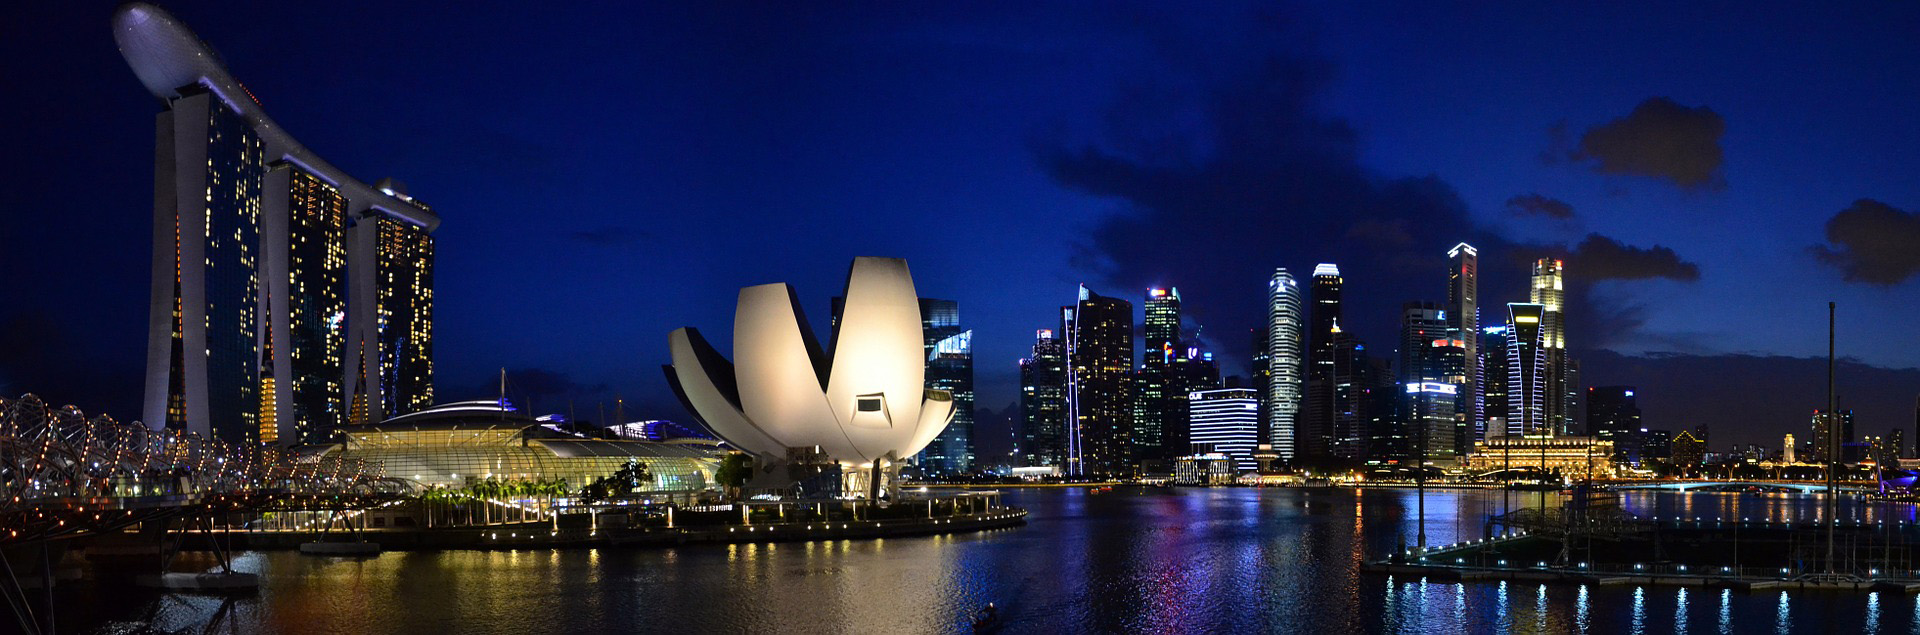 The nighttime skyline of a city on the water. Two unique structures can be seen on the left. The first is comprised of 3 flat buildings joined together at the top by a curved object which looks like the underside of a submarine. The other structure is a light, silvery object lit up in bright white light looking like a cupped robot hand with 5 fingers squared off at the ends.